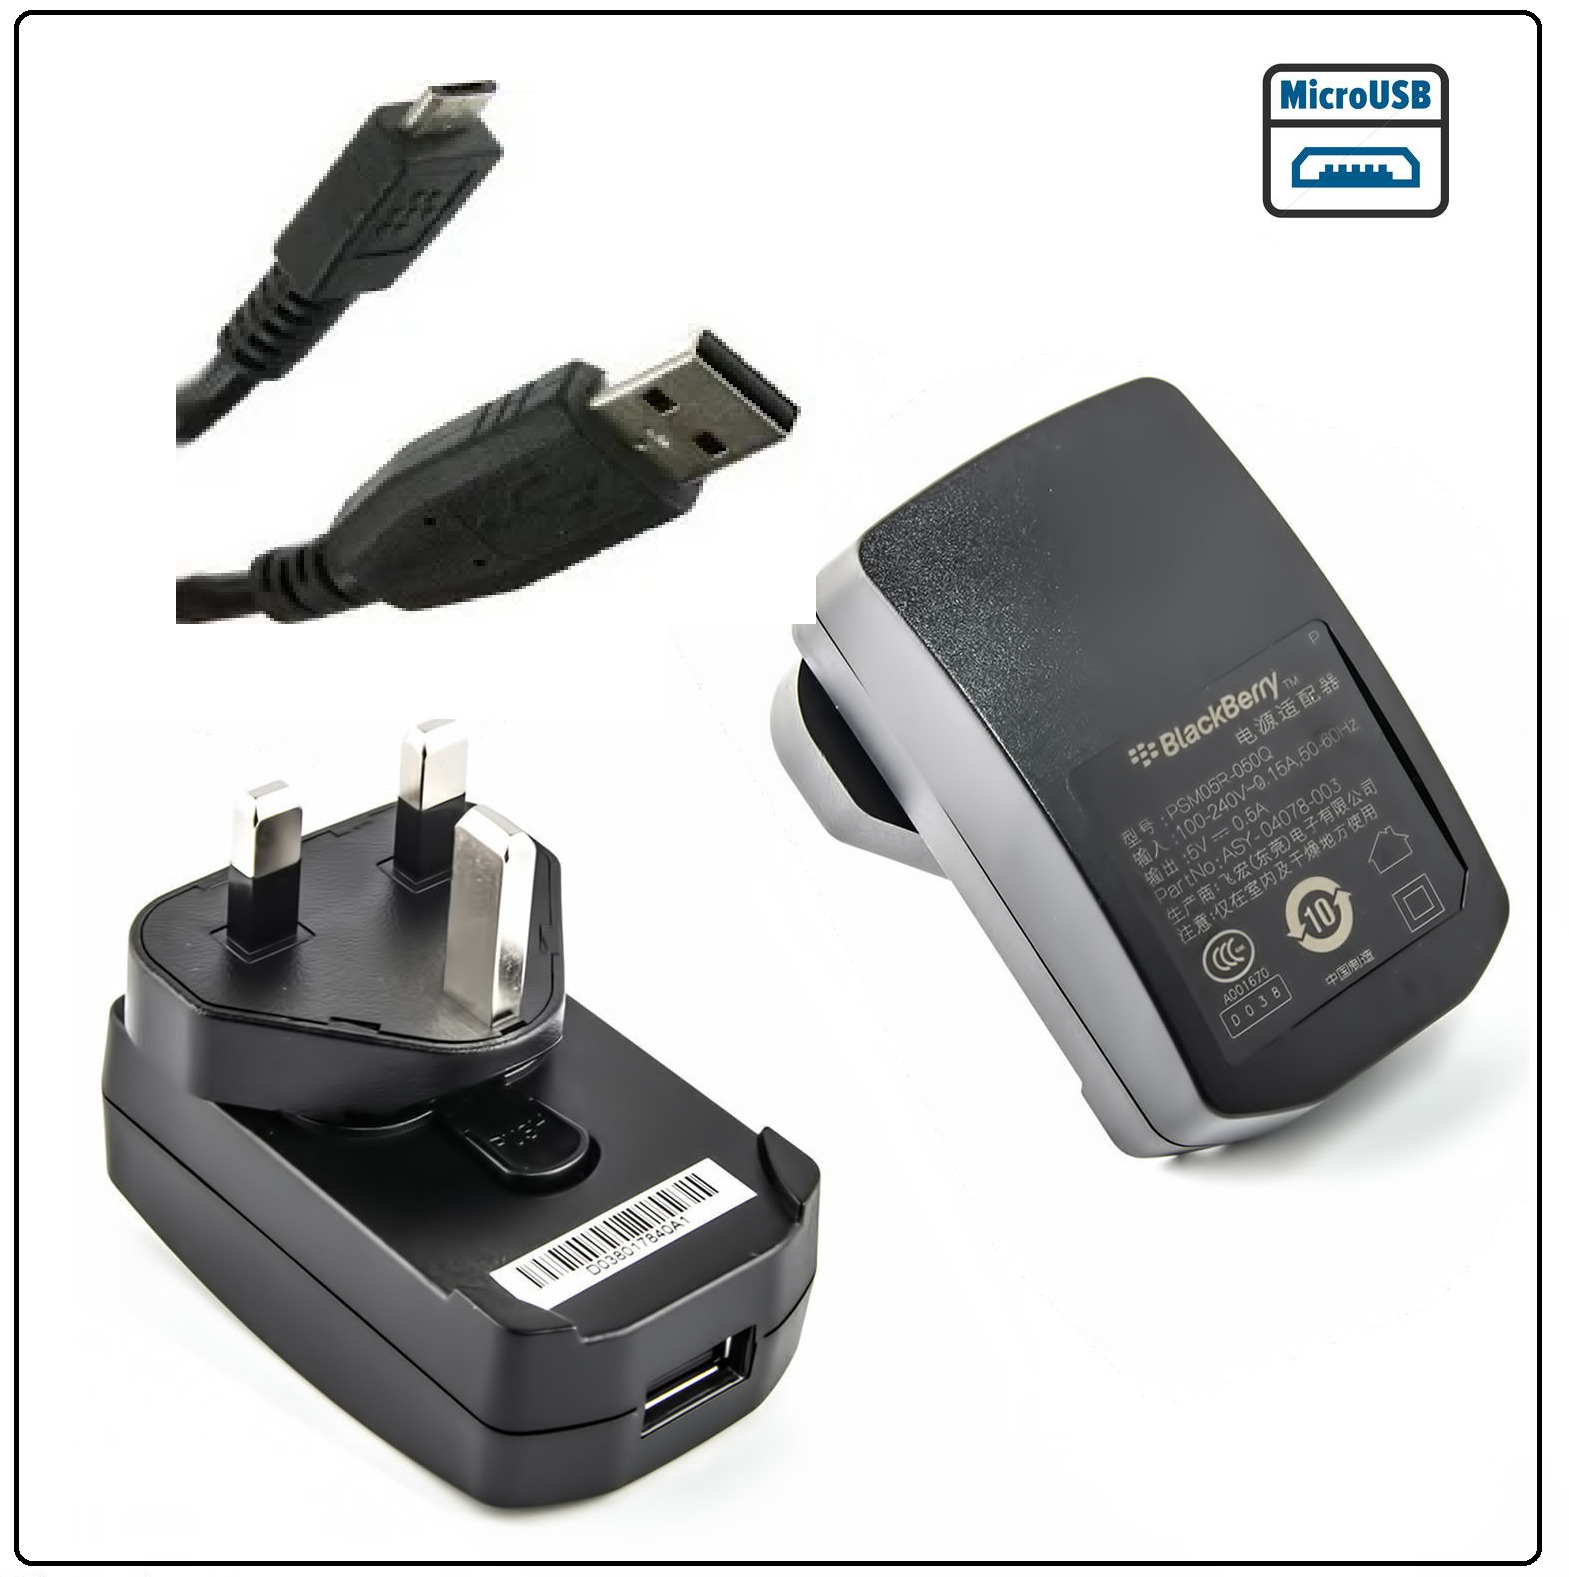 Genuine Blackberry Mains Charger For Bold 9700 9780 9790 Curve 8520 1 Of 2free Shipping